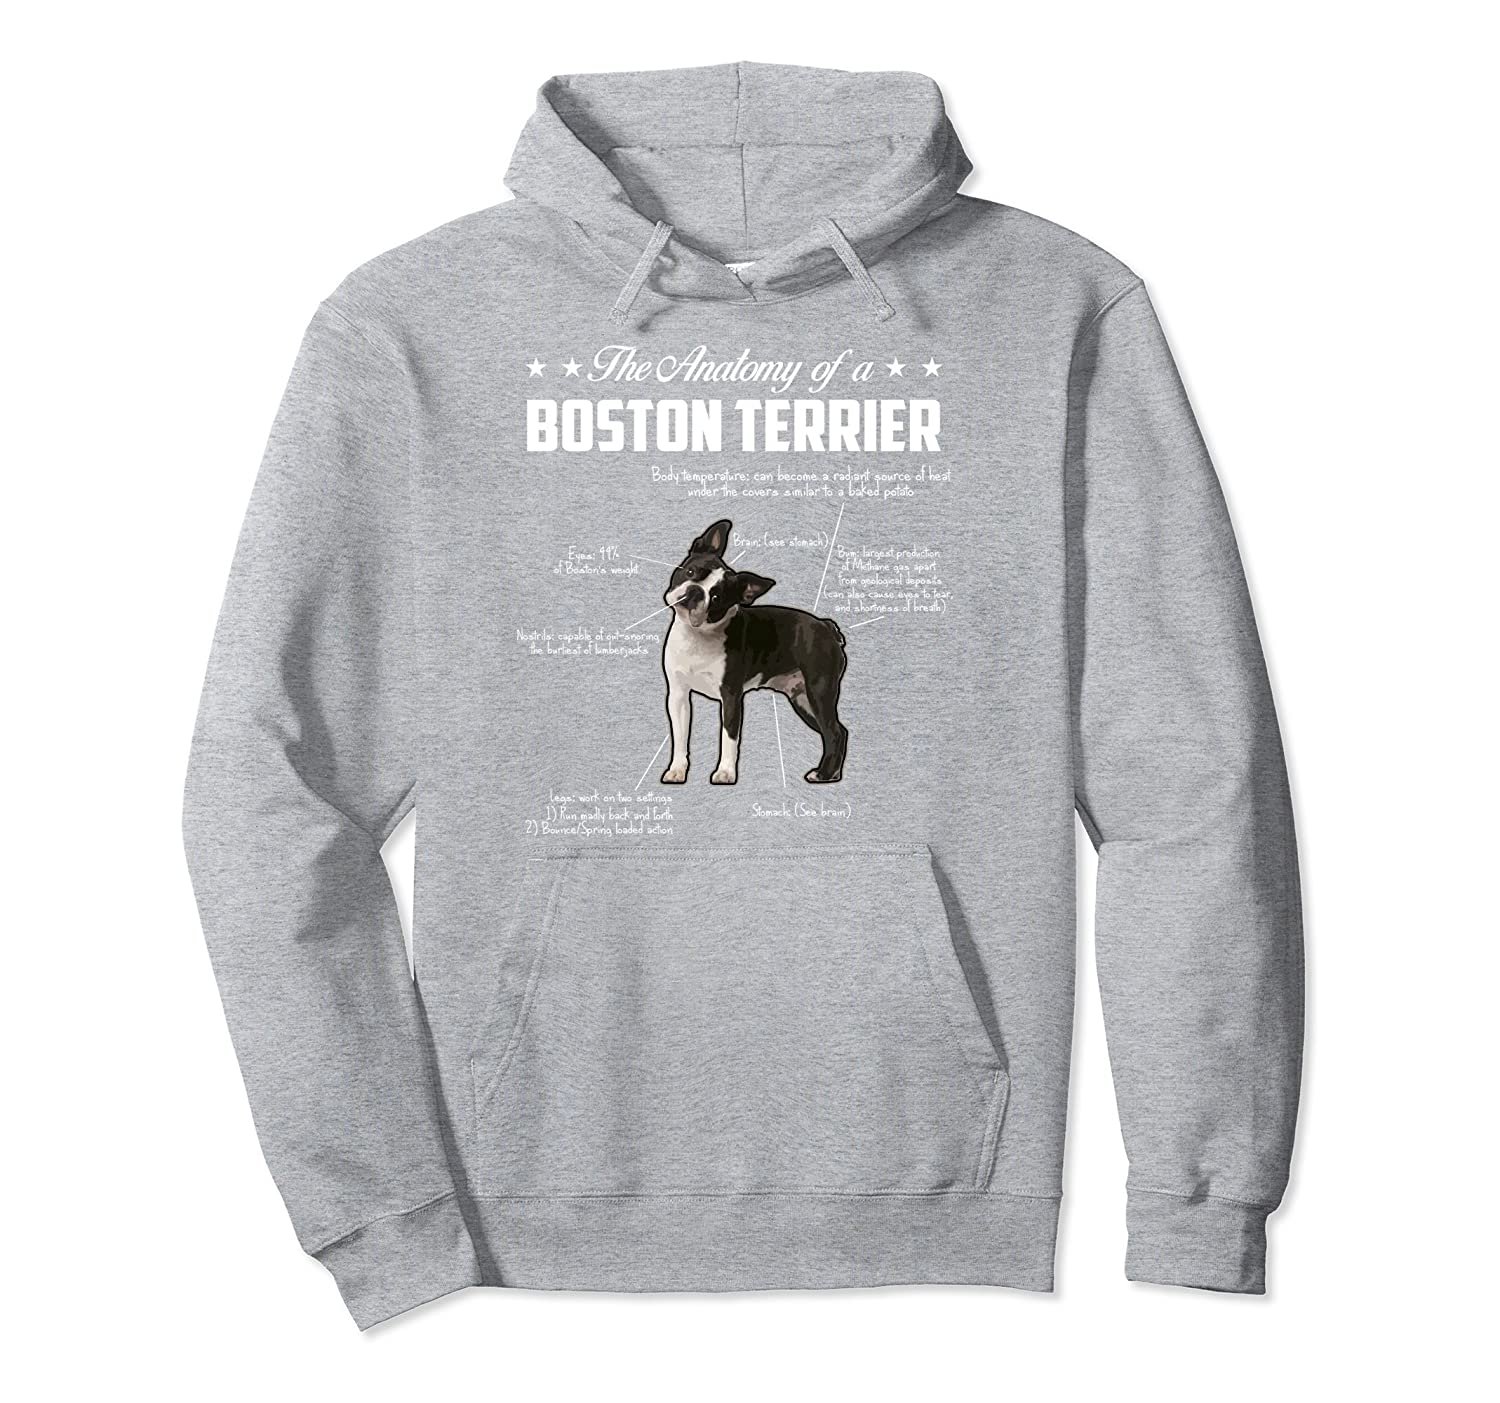 Amazon.com: Cool Boston Terrier Shirt Funny Boston Terrier Anatomy ...